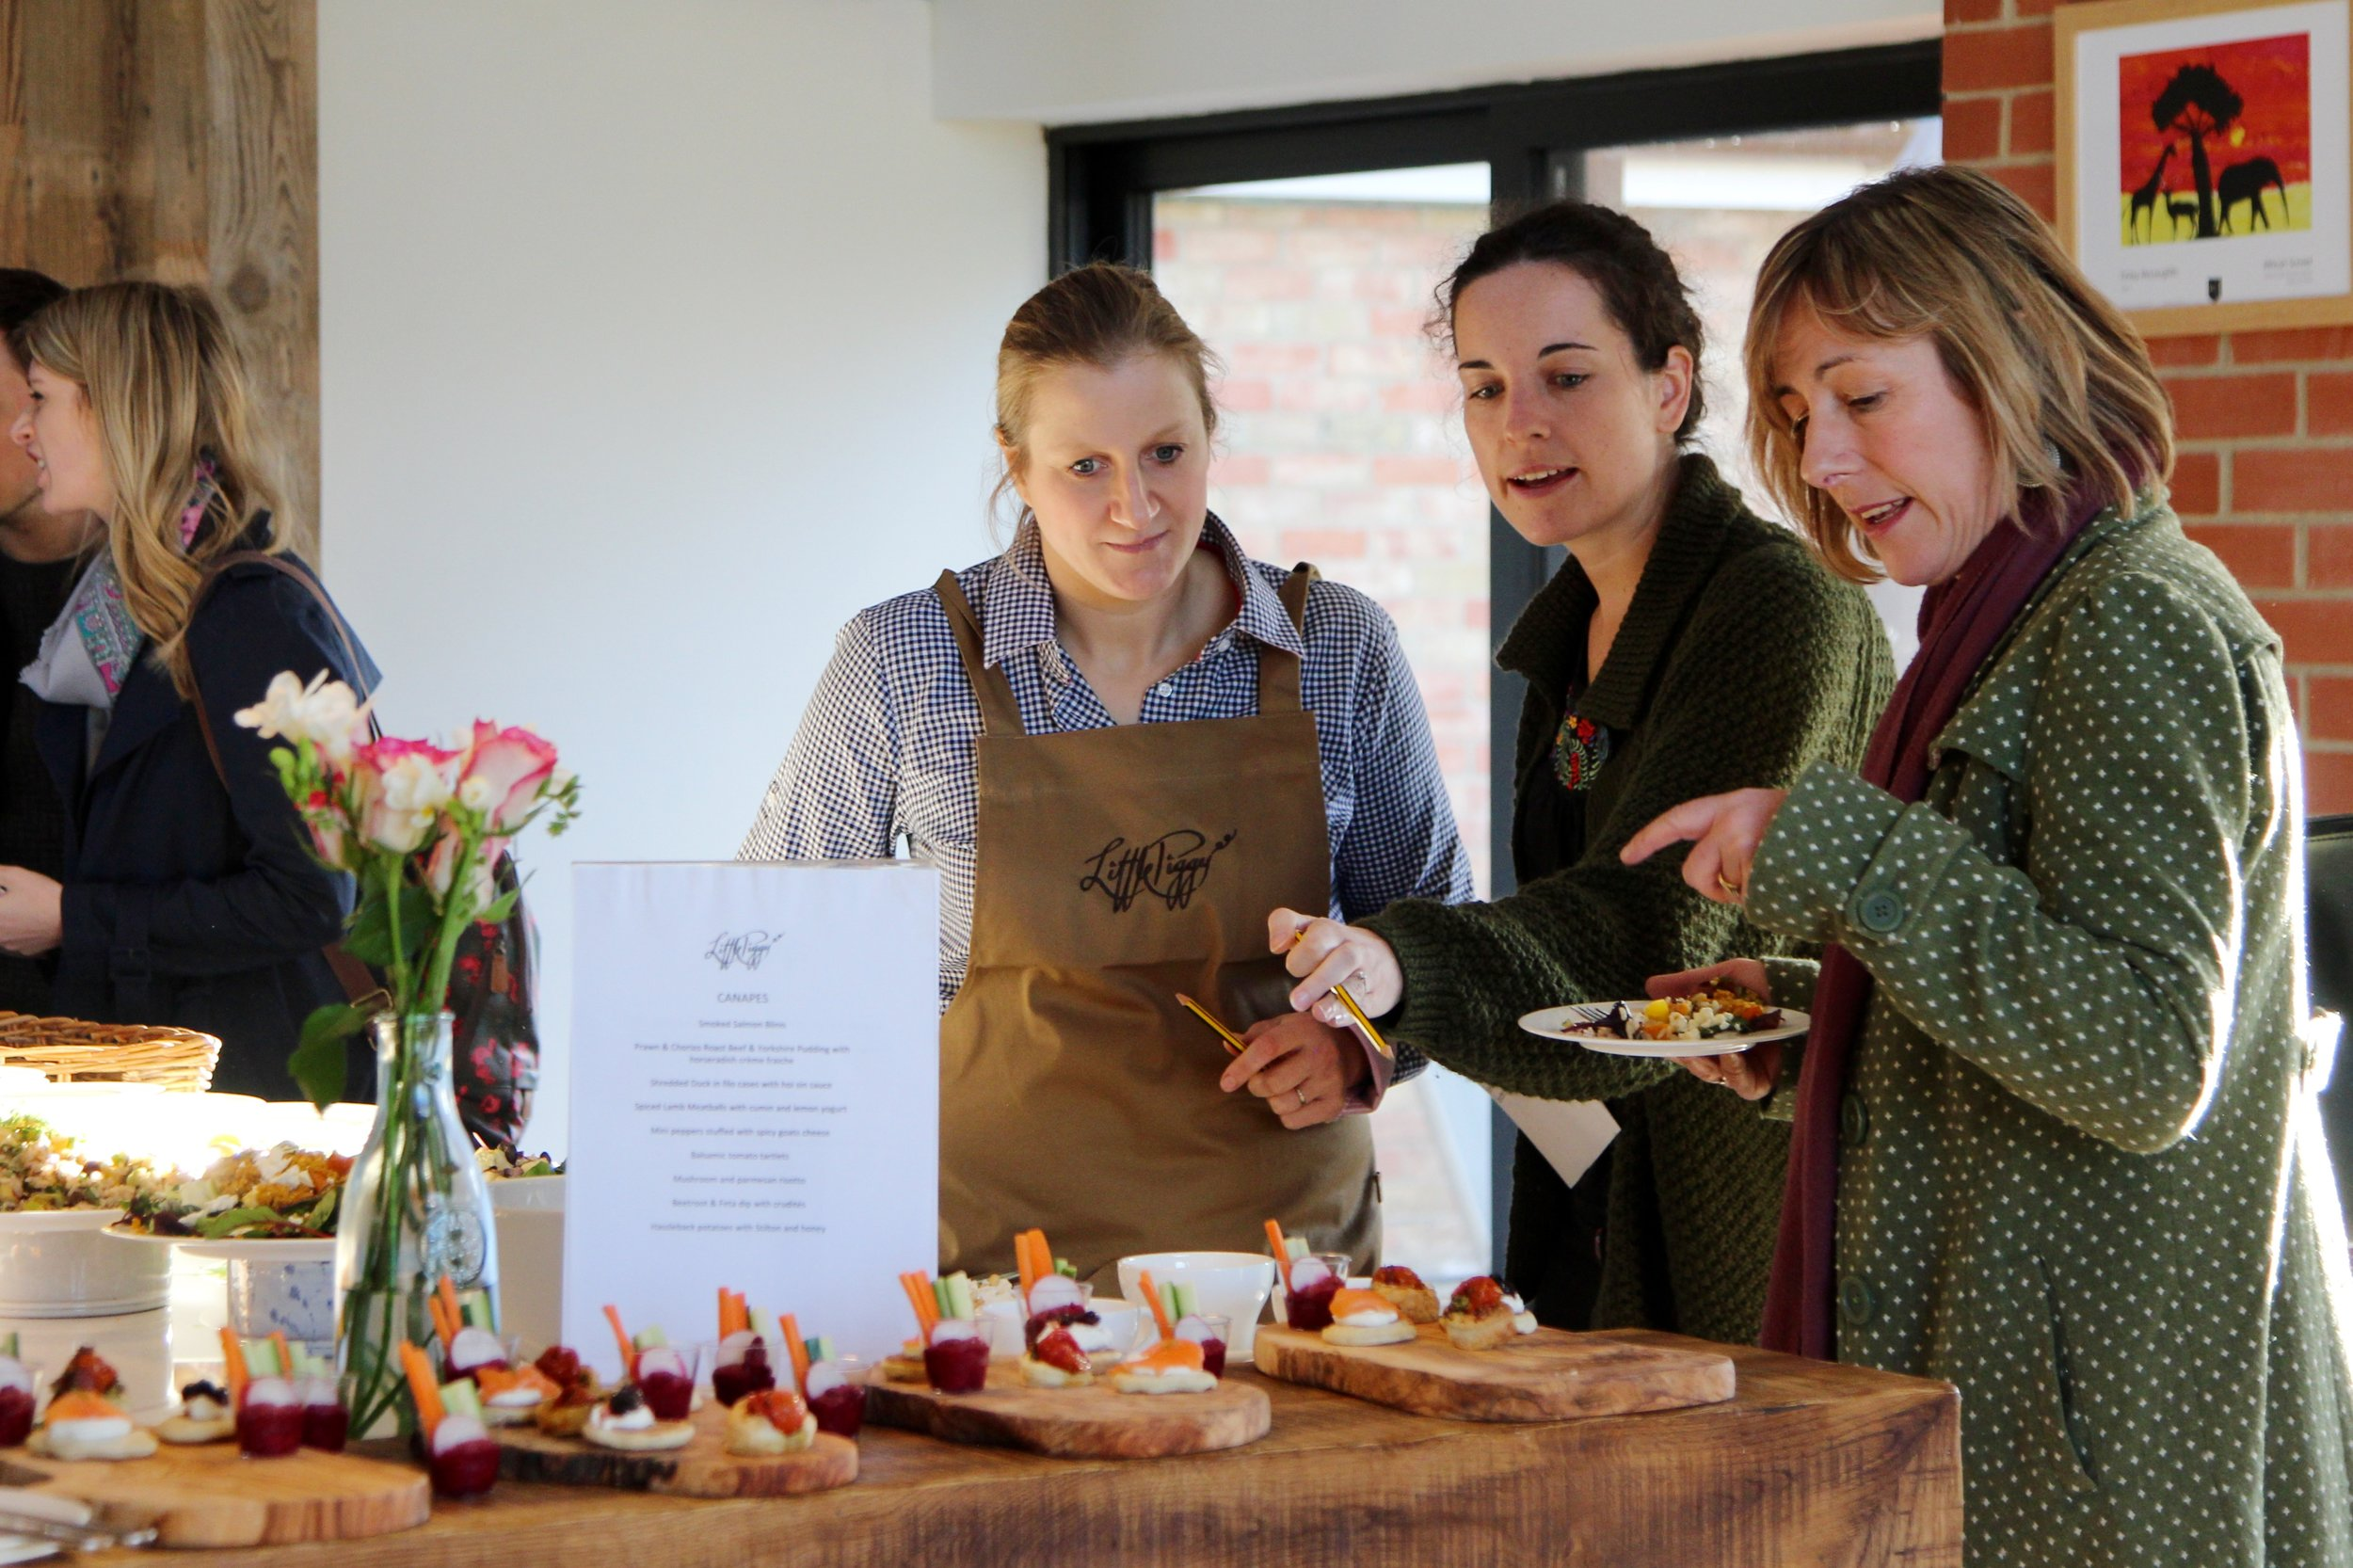 Image of canapés tasting